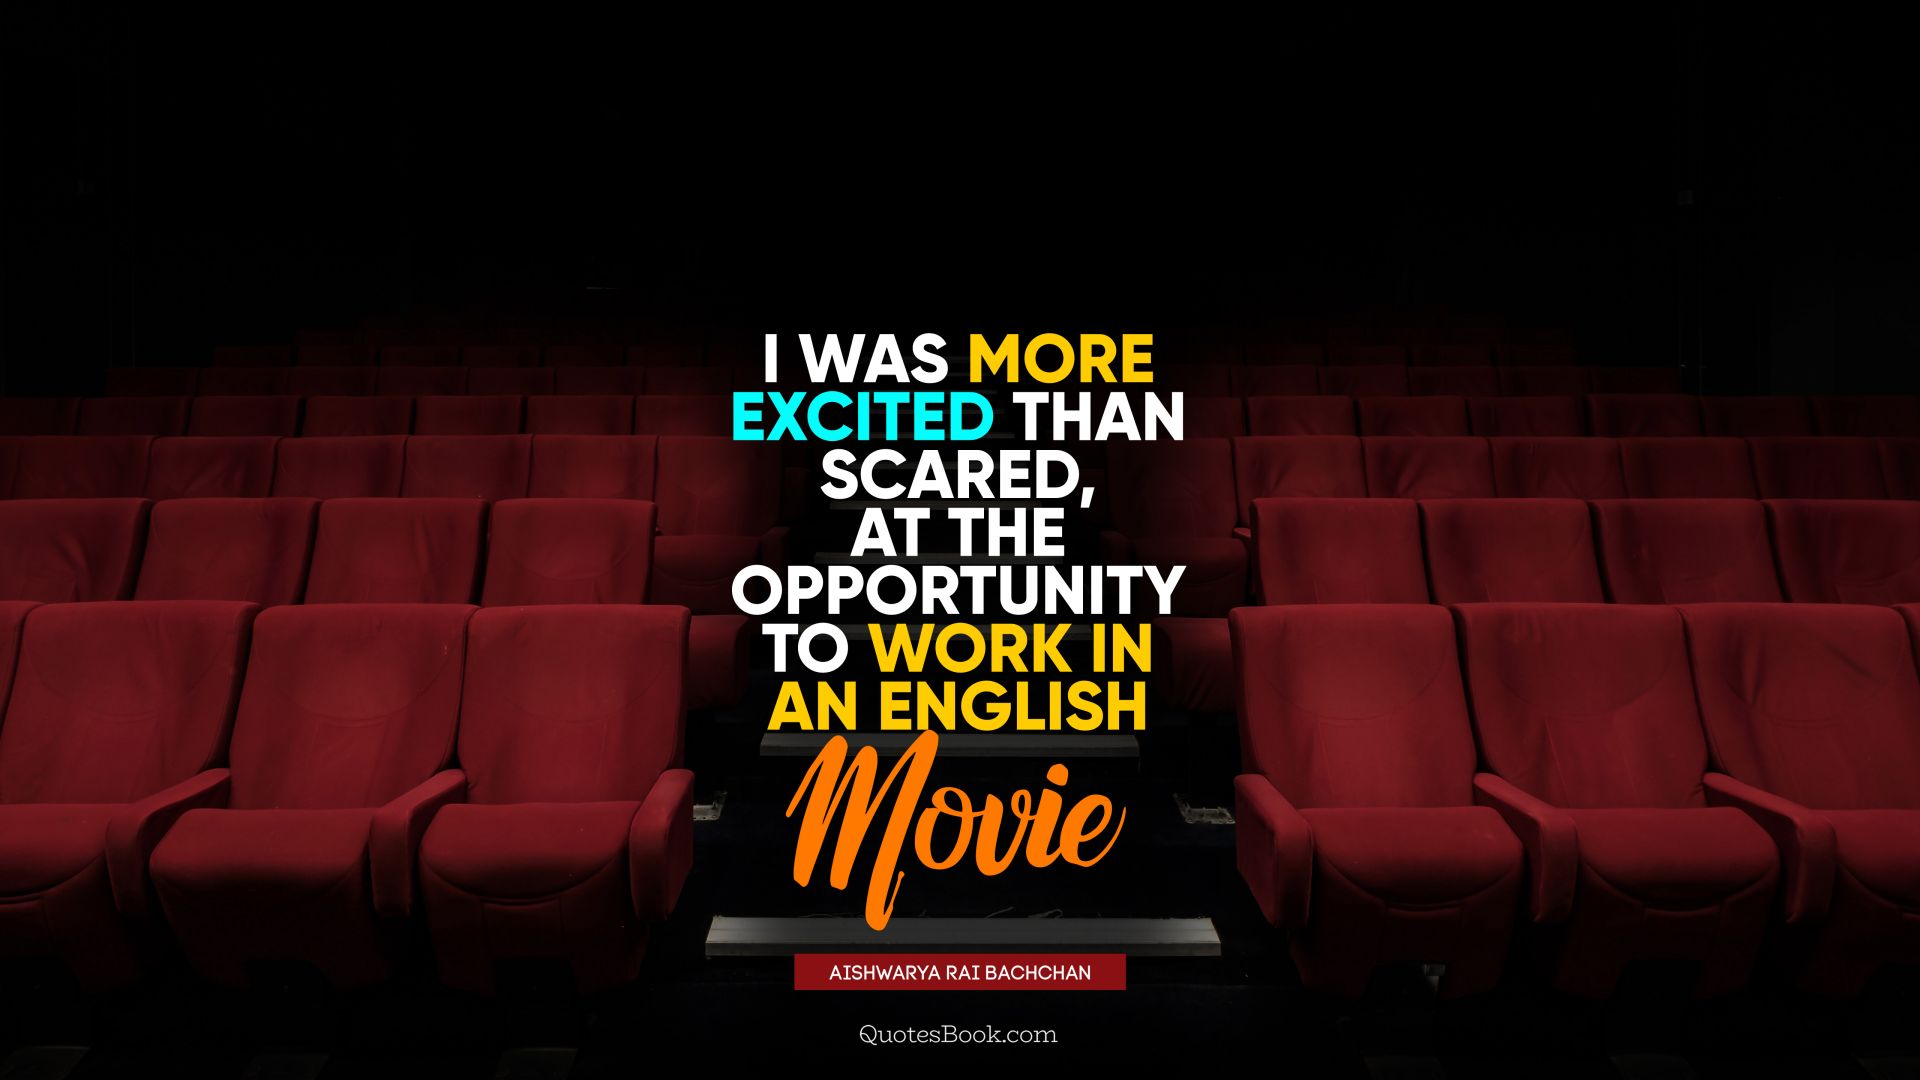 I was more excited than scared, at the opportunity to work in an English movie. - Quote by Aishwarya Rai Bachchan